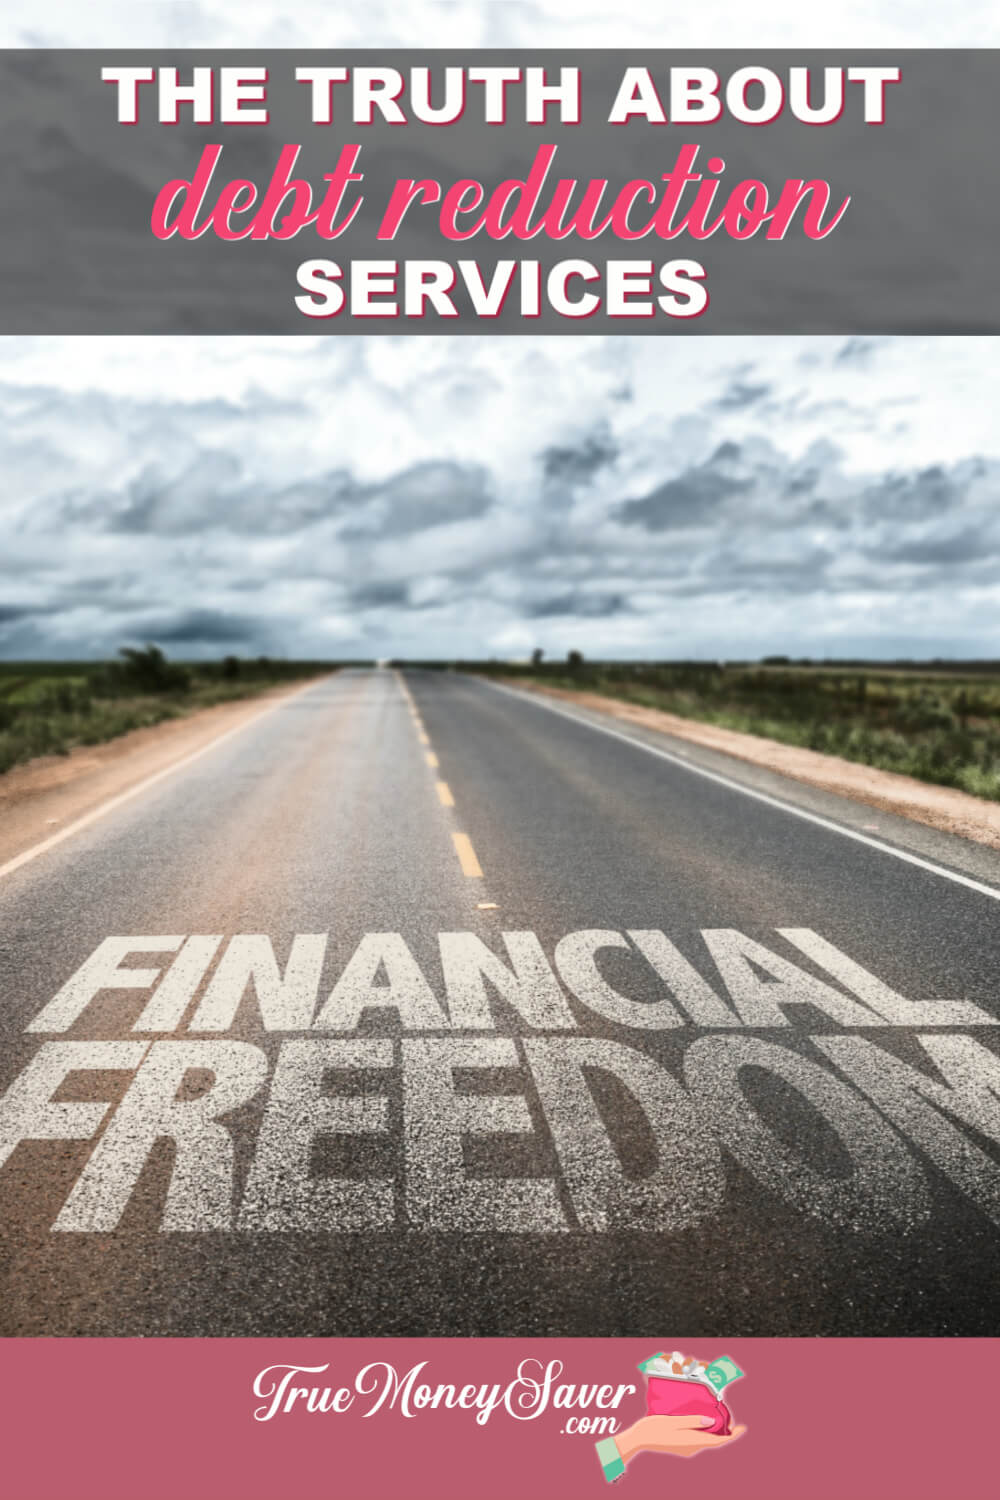 Debt reduction service companies can feel like a lifesaver during tough times. Be informed about what is best for you and your financial future! #debtfree #saving #truemoneysaver #familyfinances #financialfreedom